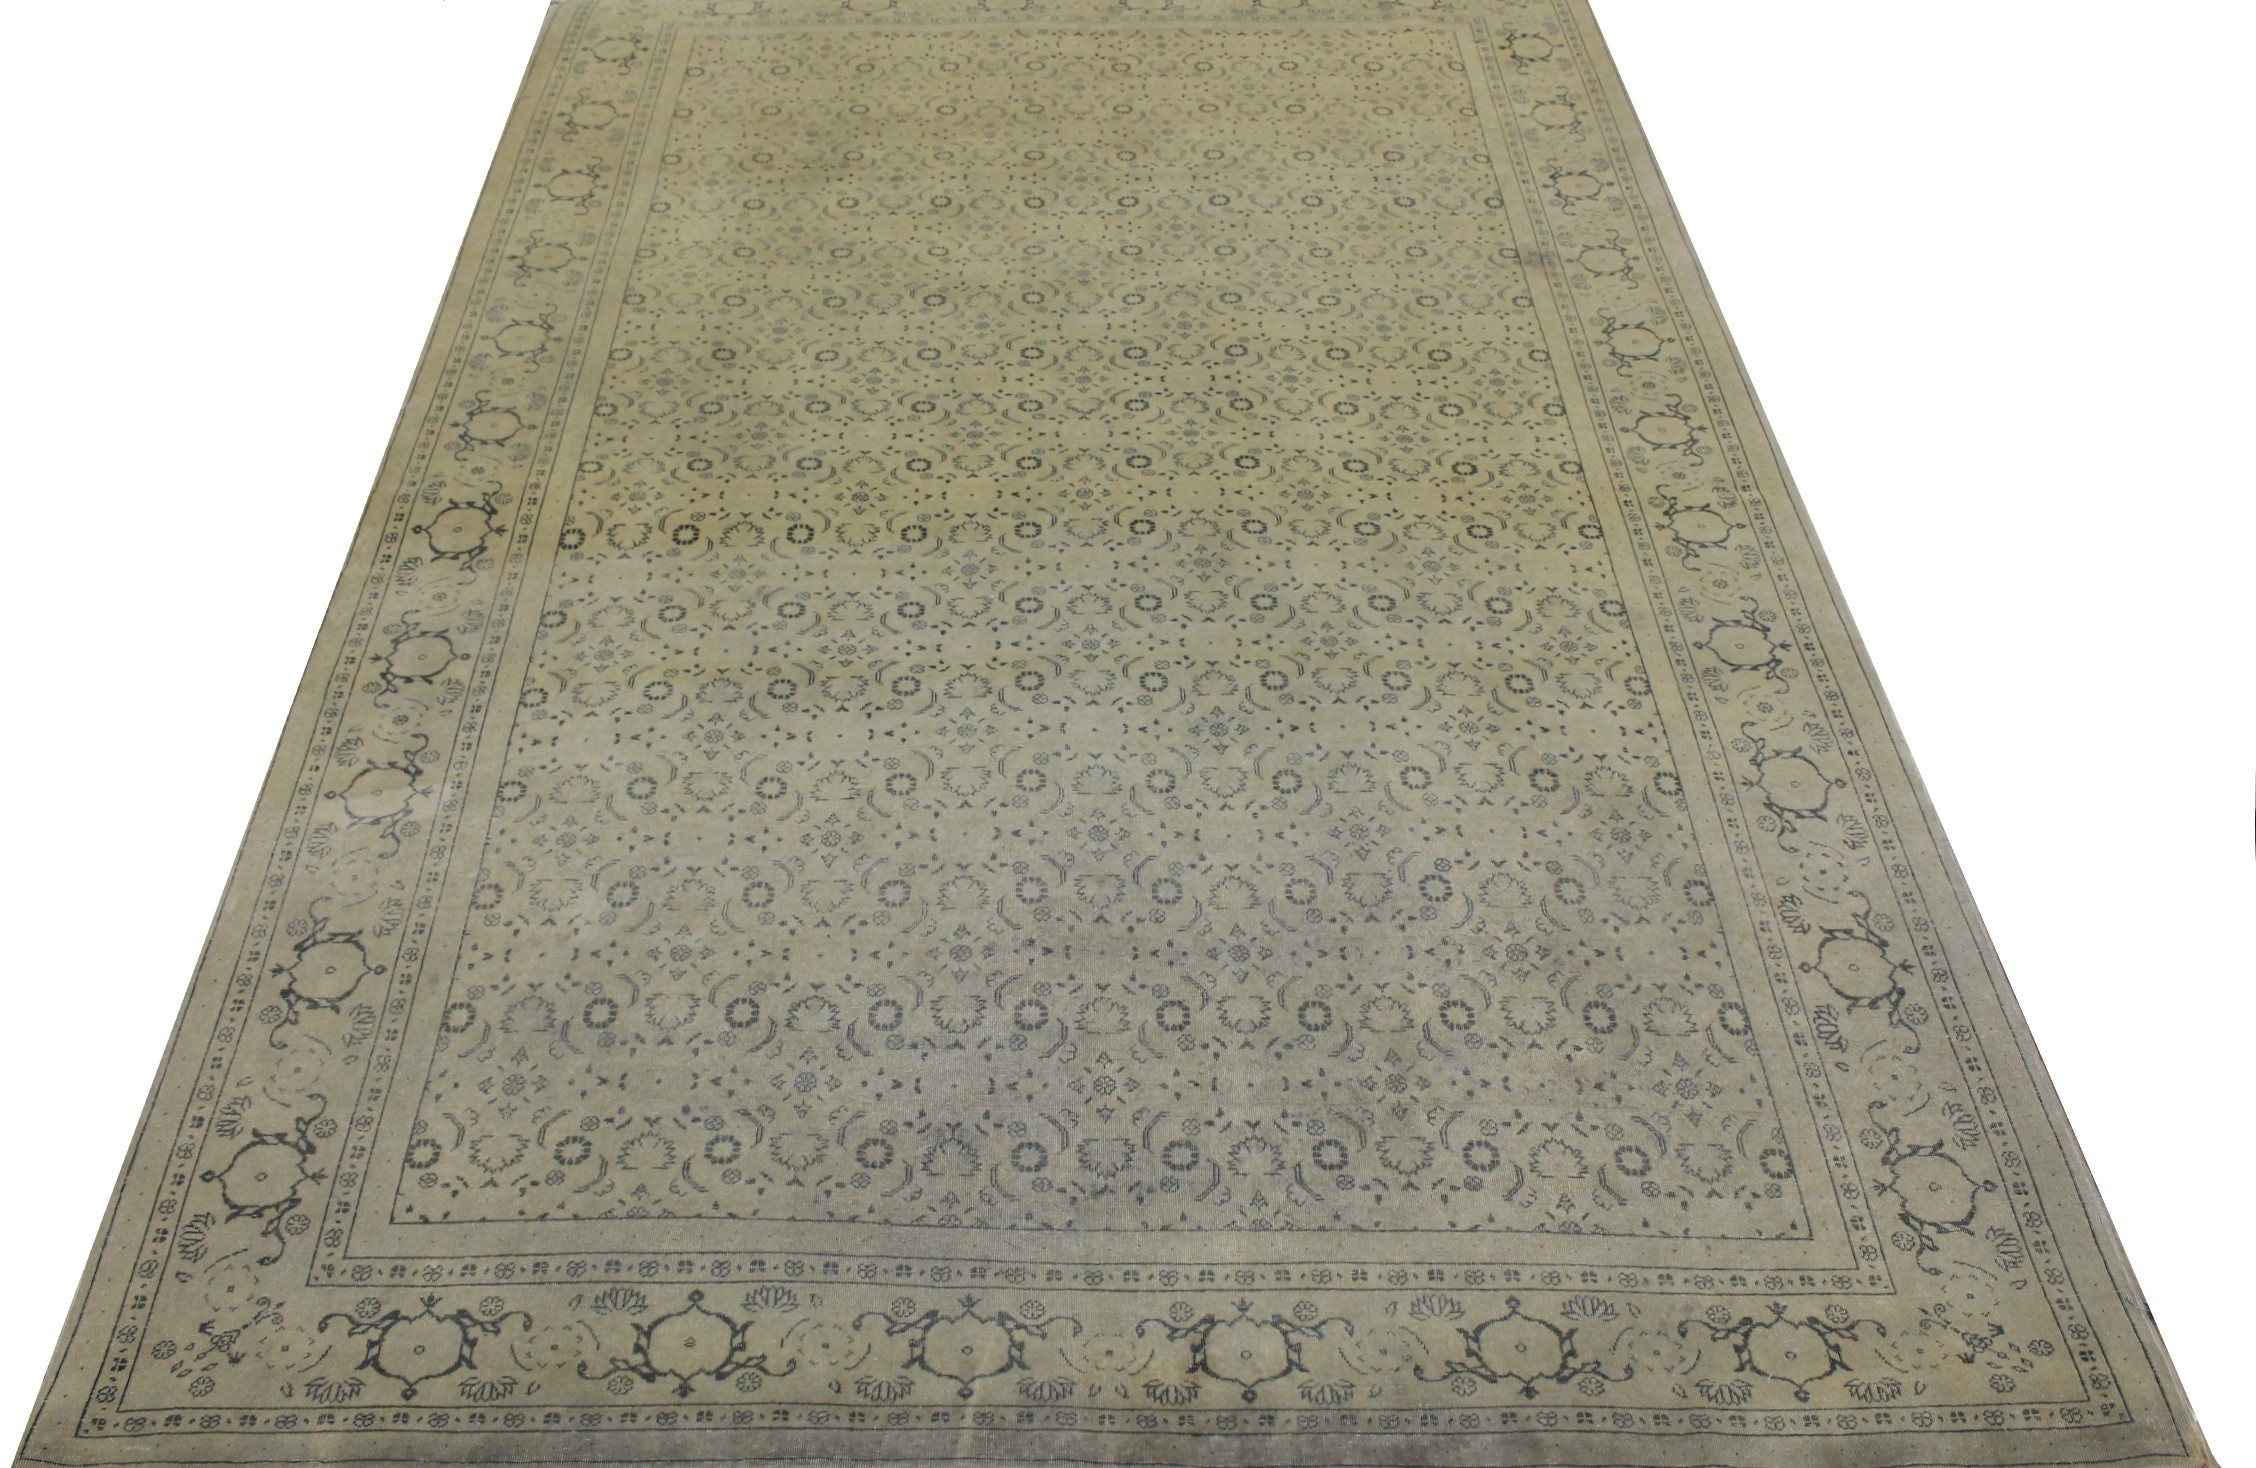 8x10 Oushak Hand Knotted Wool Area Rug - MR16796